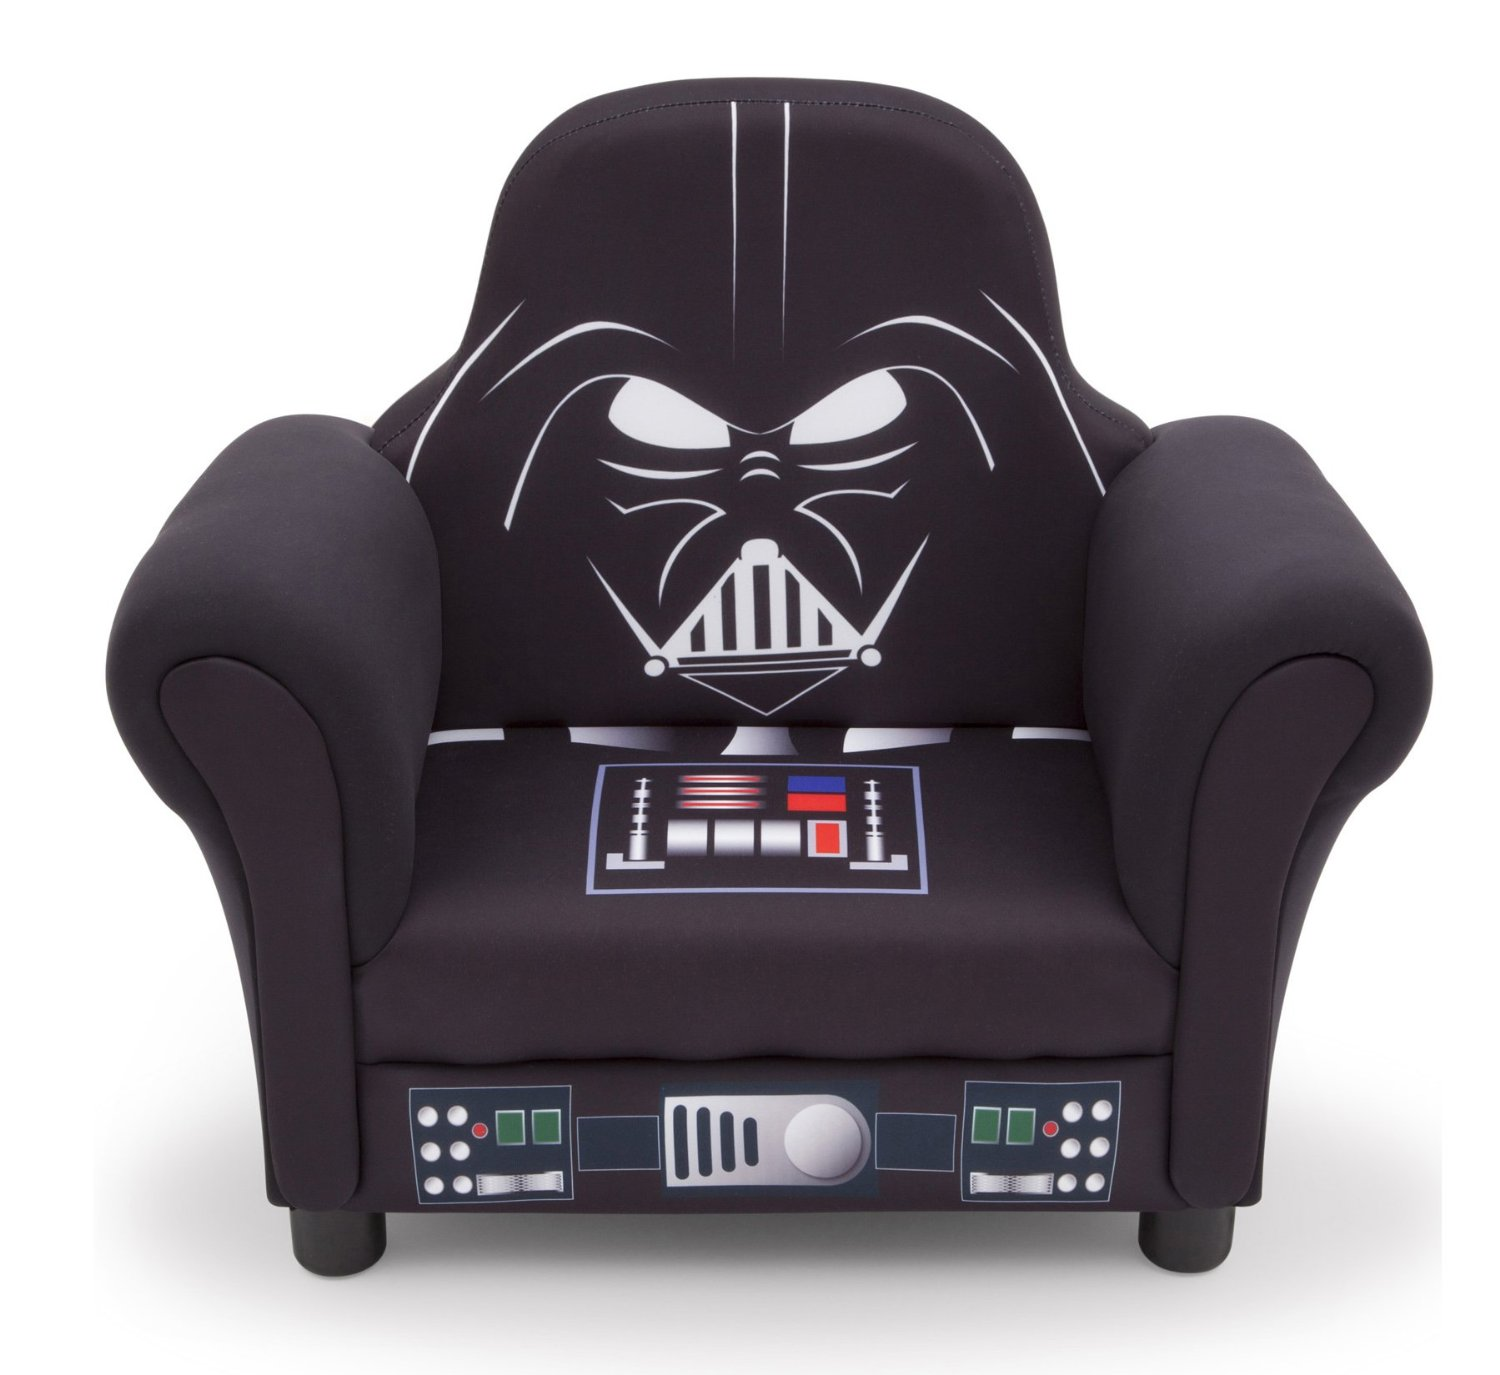 Wondrous Star Wars Darth Vader Deluxe Upholstered Chair Mightymega Creativecarmelina Interior Chair Design Creativecarmelinacom